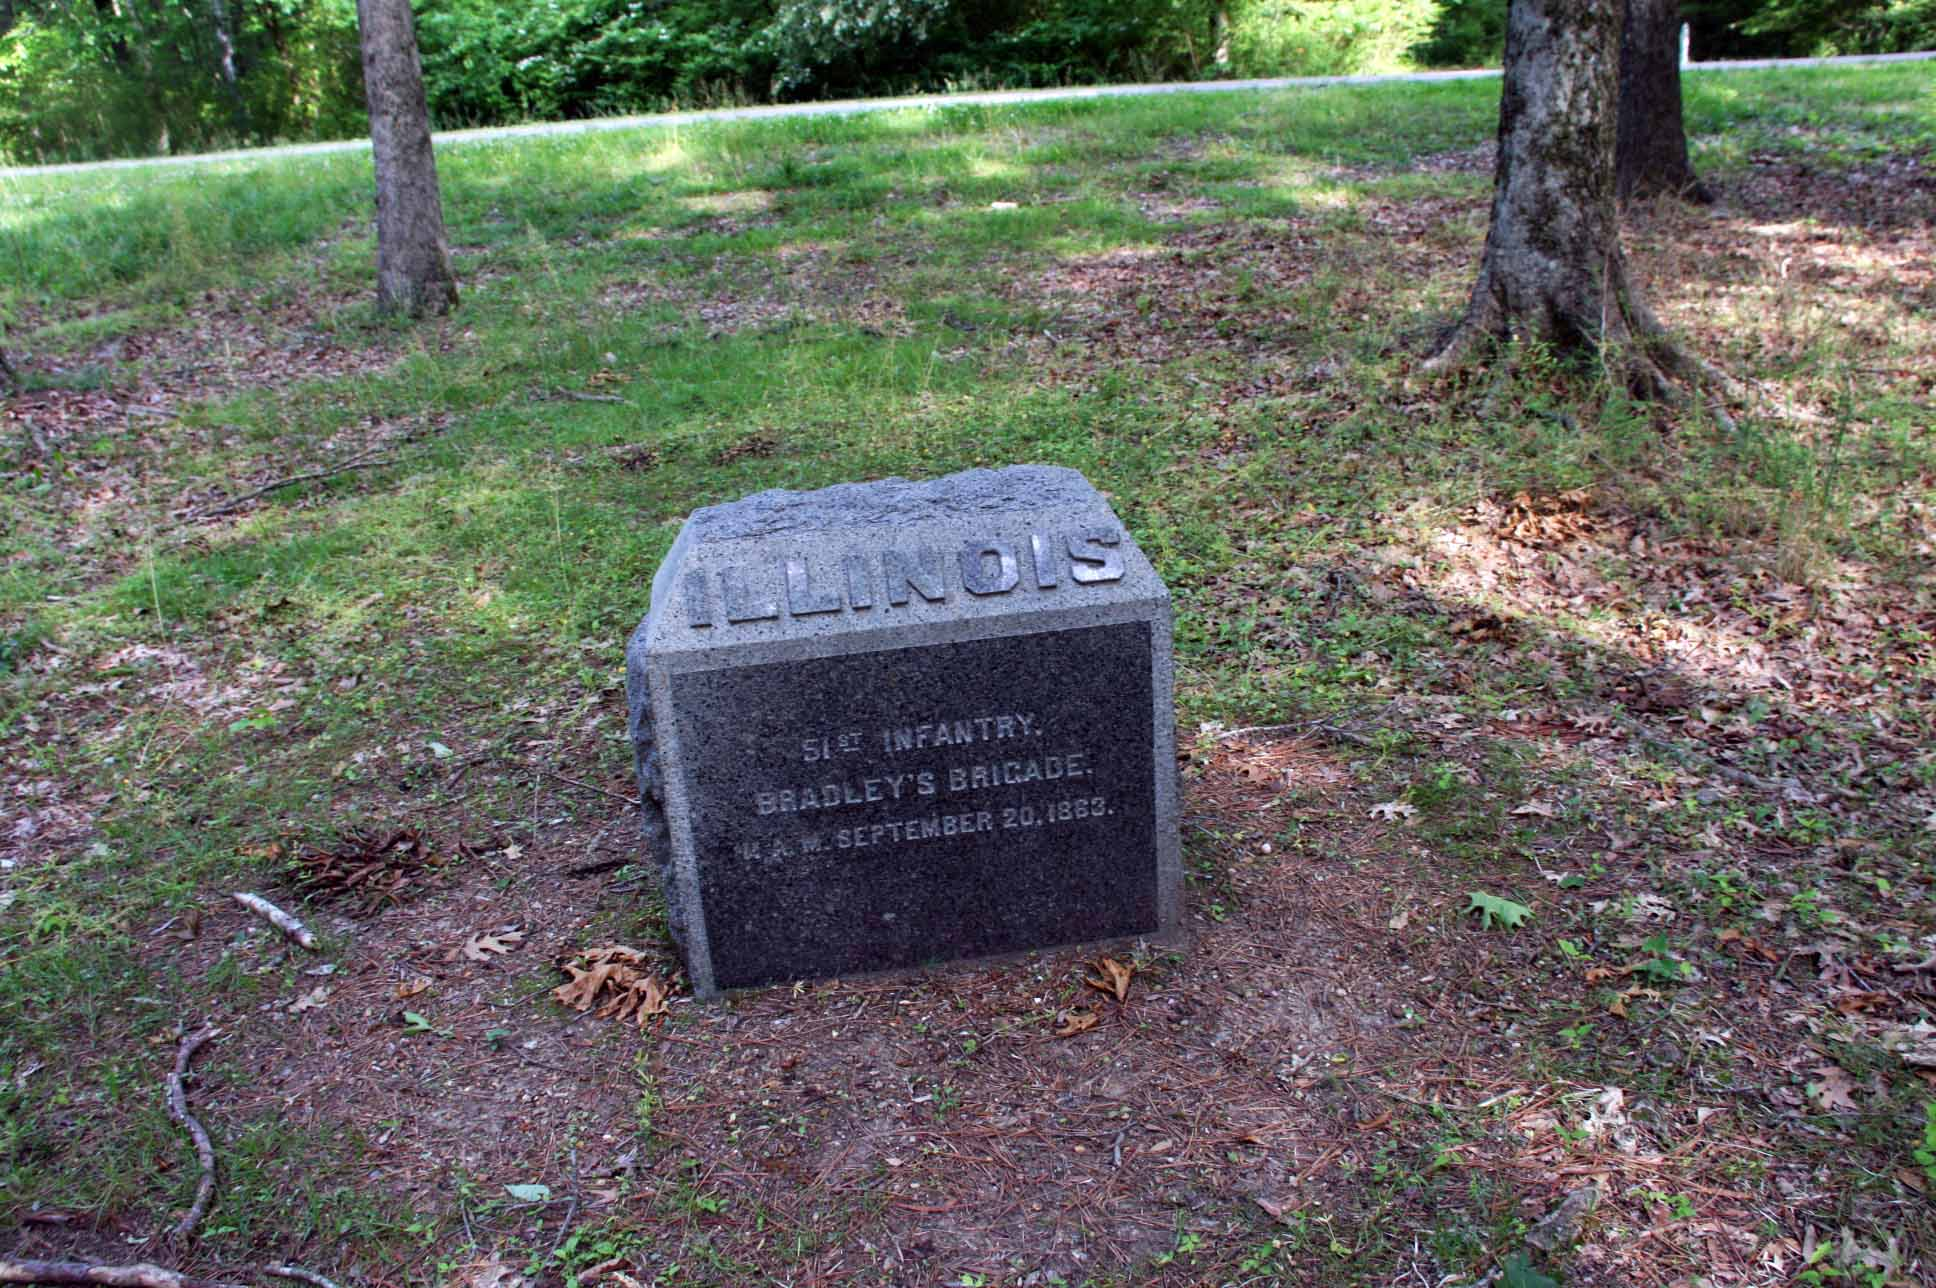 51st Illinois Infantry Marker, click photo to enlarge.